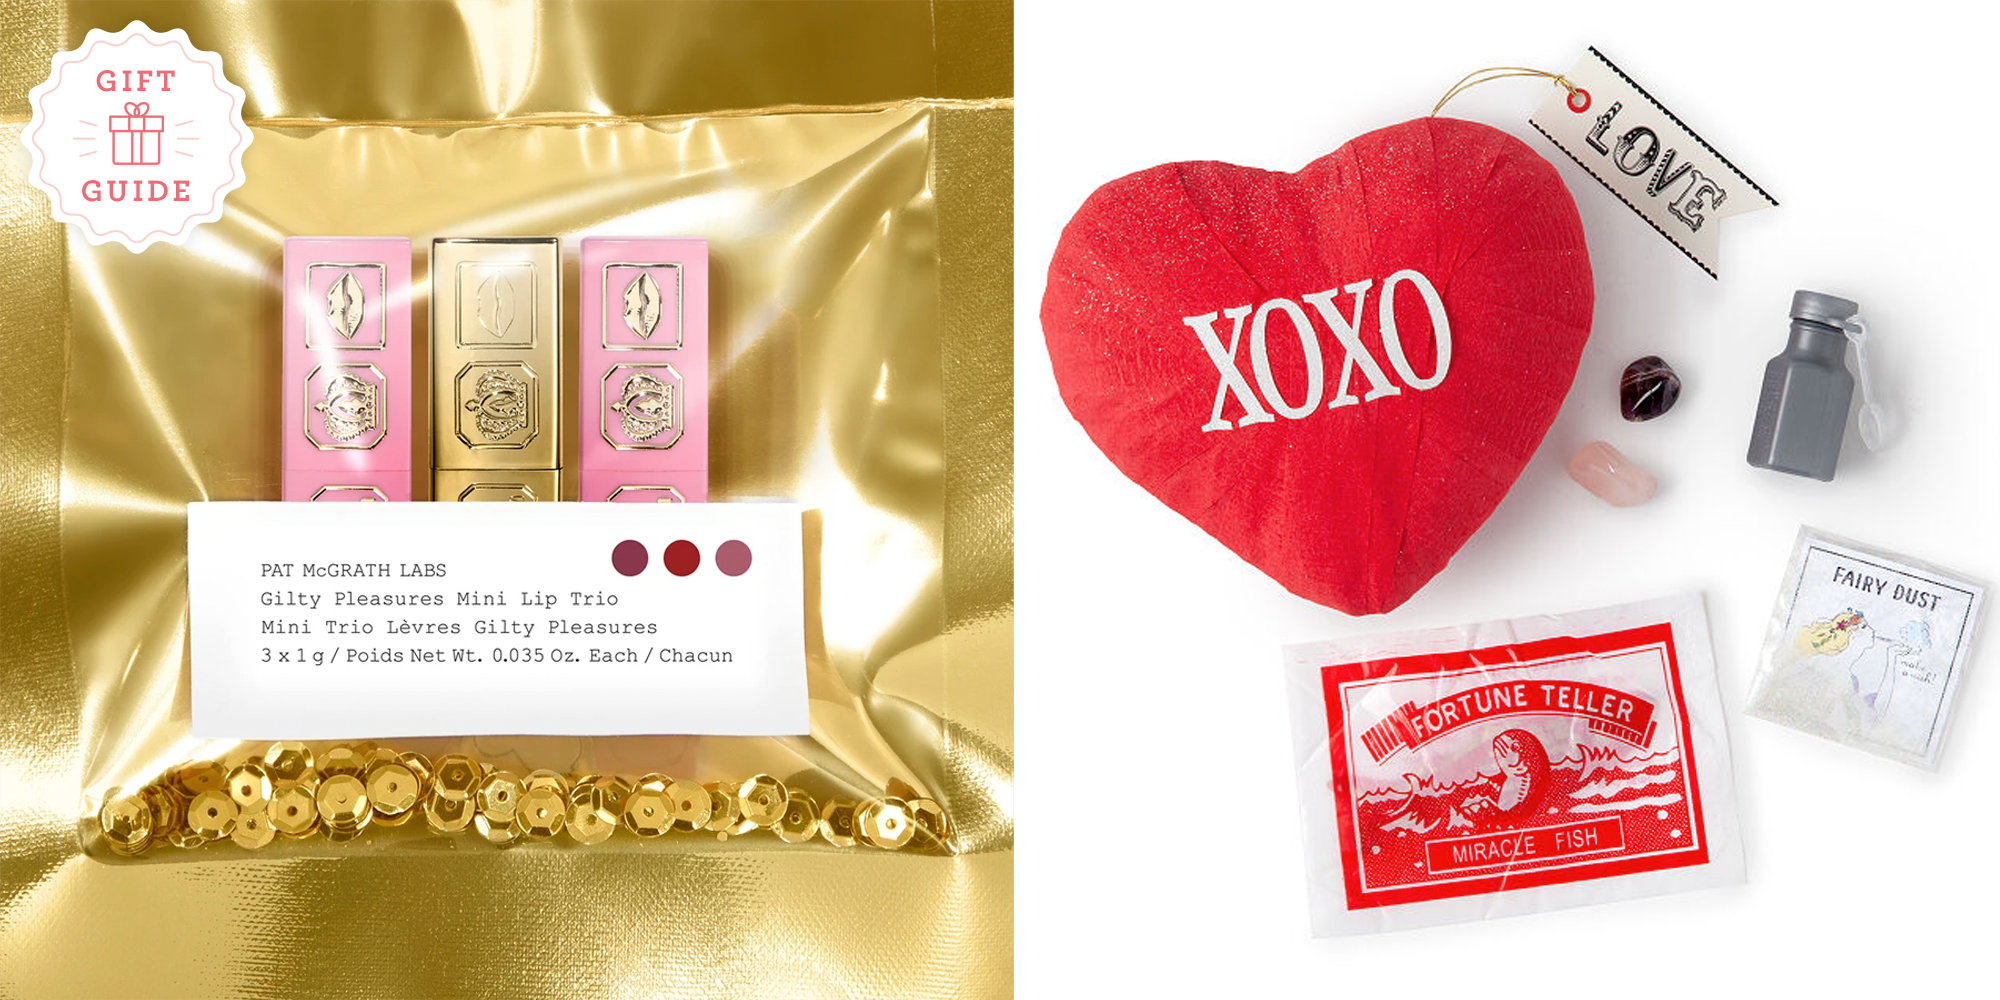 23 Best Galentines Day Gifts Cute And Cheap Galentines Day Gift Ideas For Friends